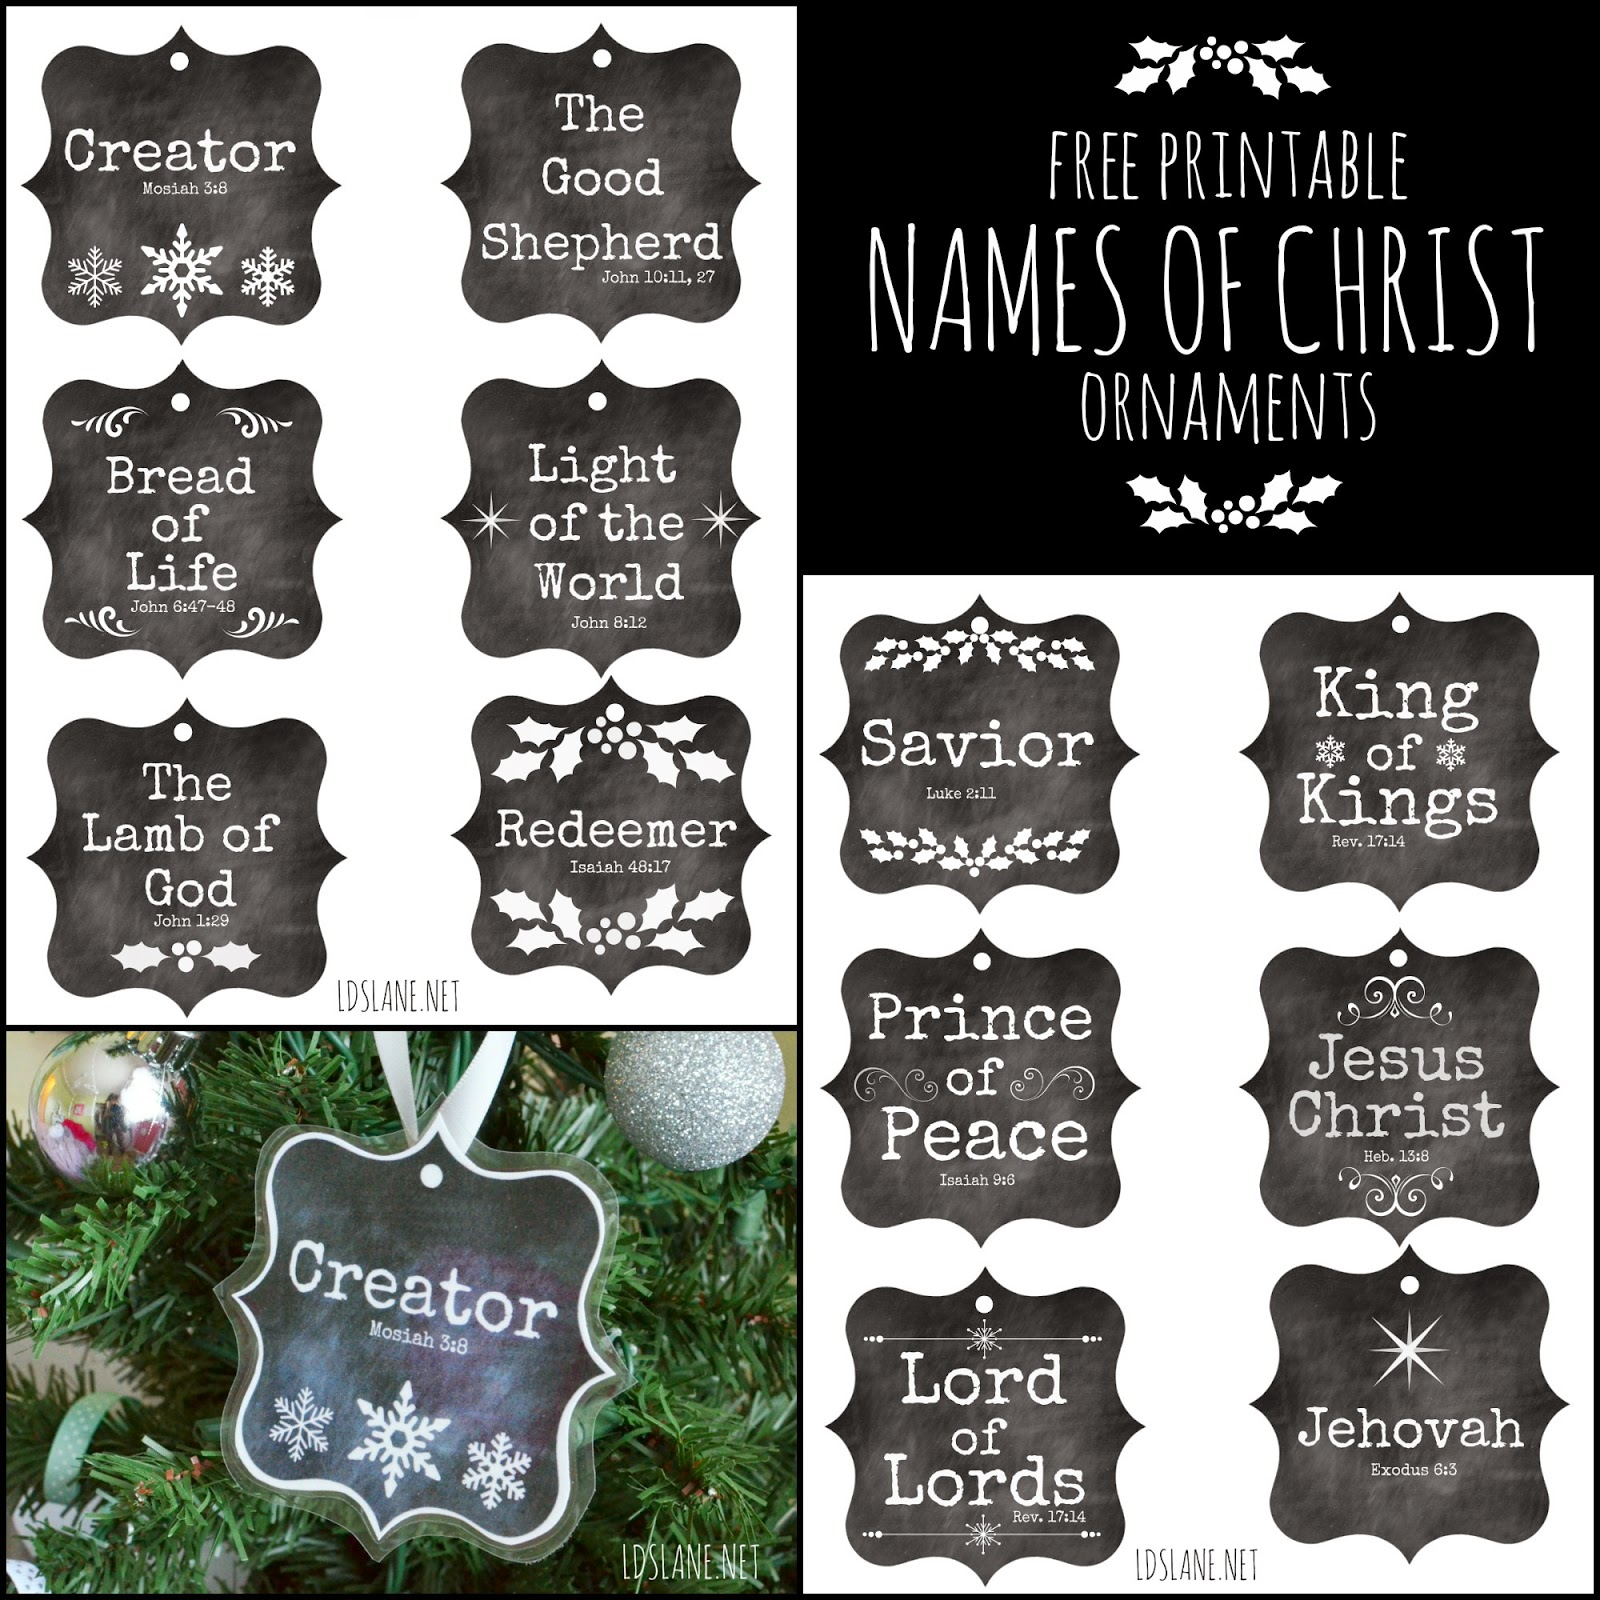 Jesus Ornaments Jesus Ornament Designs: Free Printable Ornaments